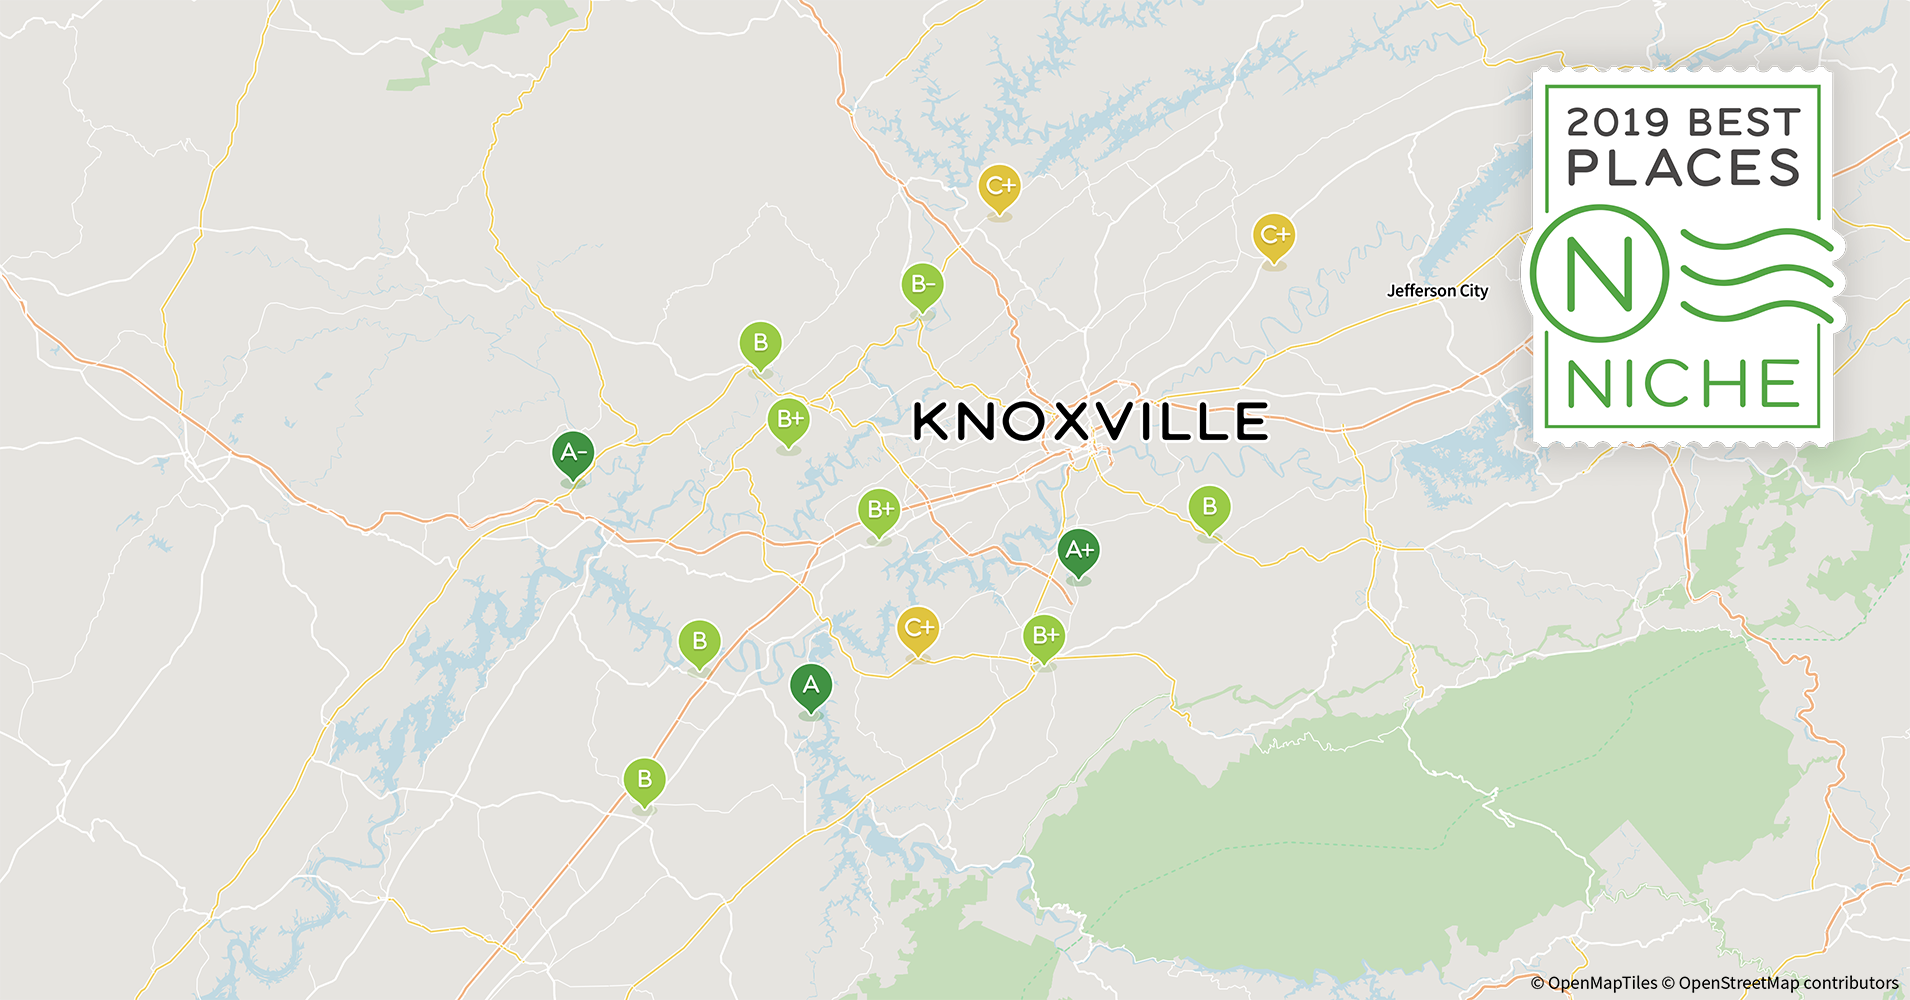 2019 Safe Places to Live in Knoxville Area - Niche